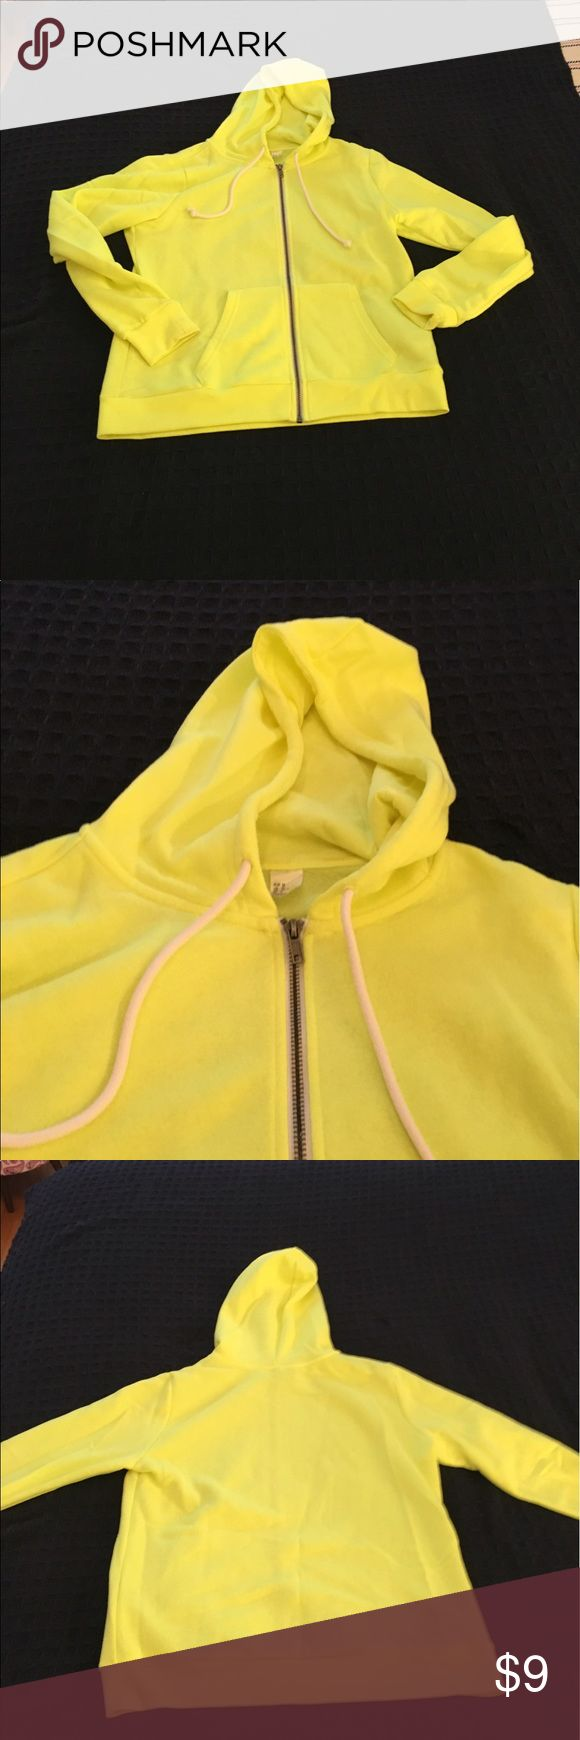 Divided Neon Yellow Zip-up Hoodie Worn once! Divided Neon Yellow zip-up hoodie. Size M. Faint stain on right elbow (see last photo) Divided Tops Sweatshirts & Hoodies